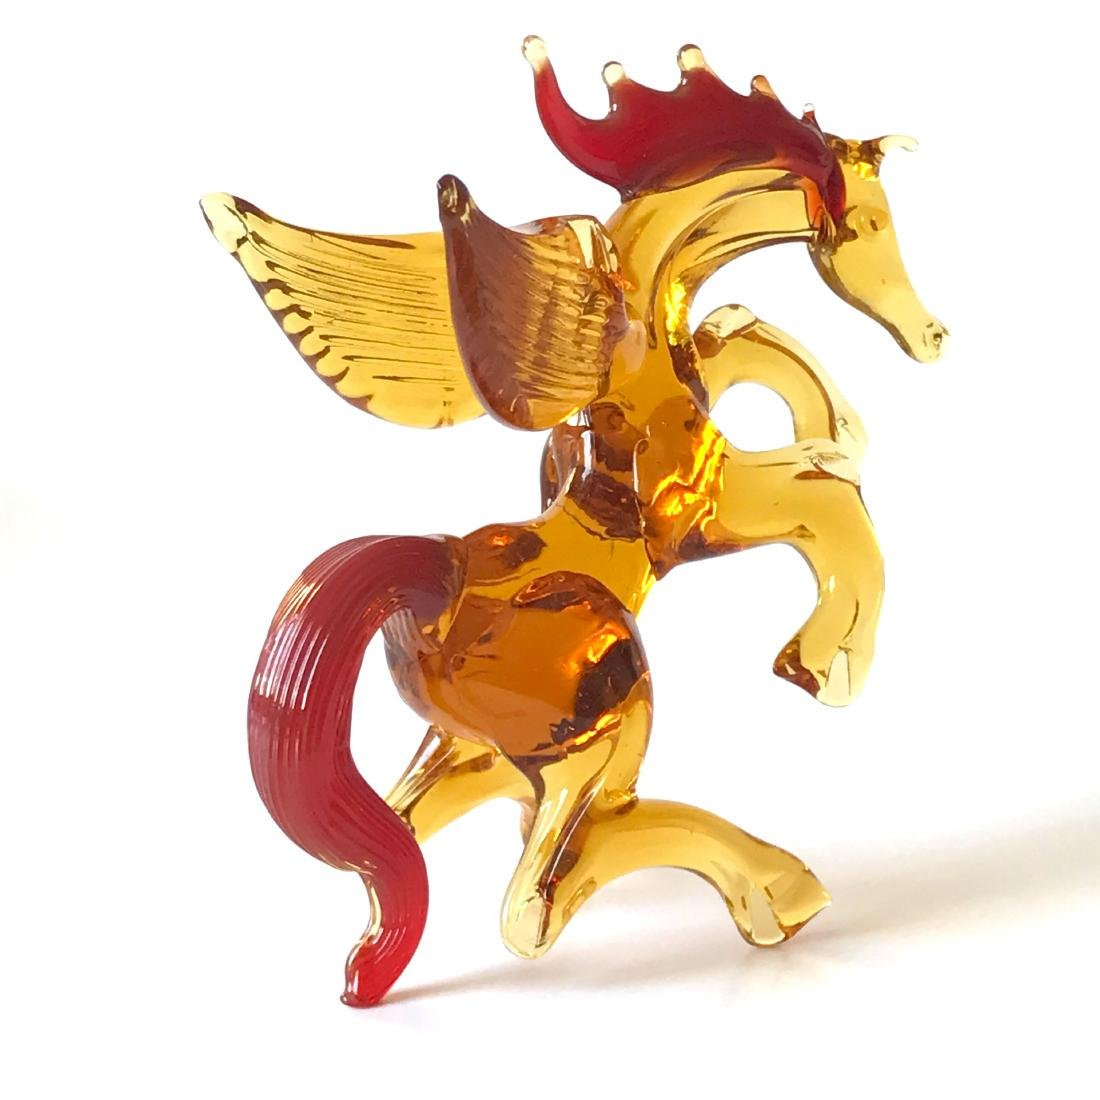 Figurine of Pegasus the winged horse amber coloured - 3